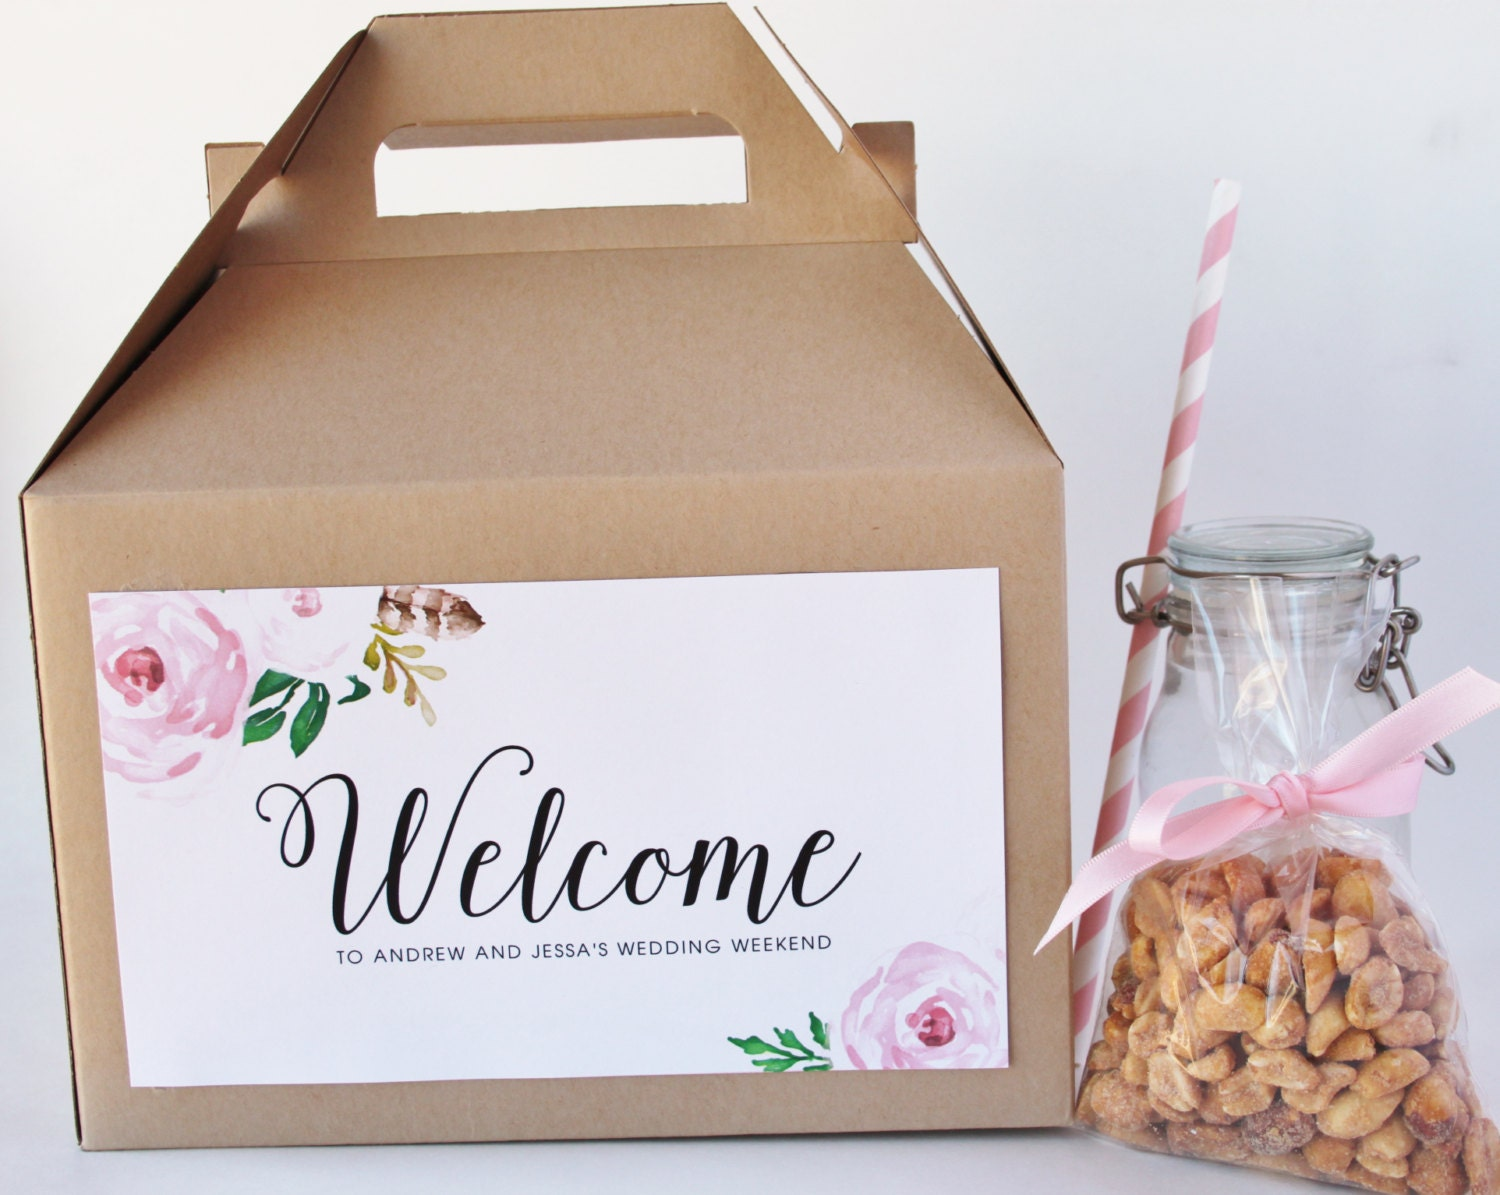 Set 10 Hotel Welcome Box Kraft Gable Box With Custom Labels